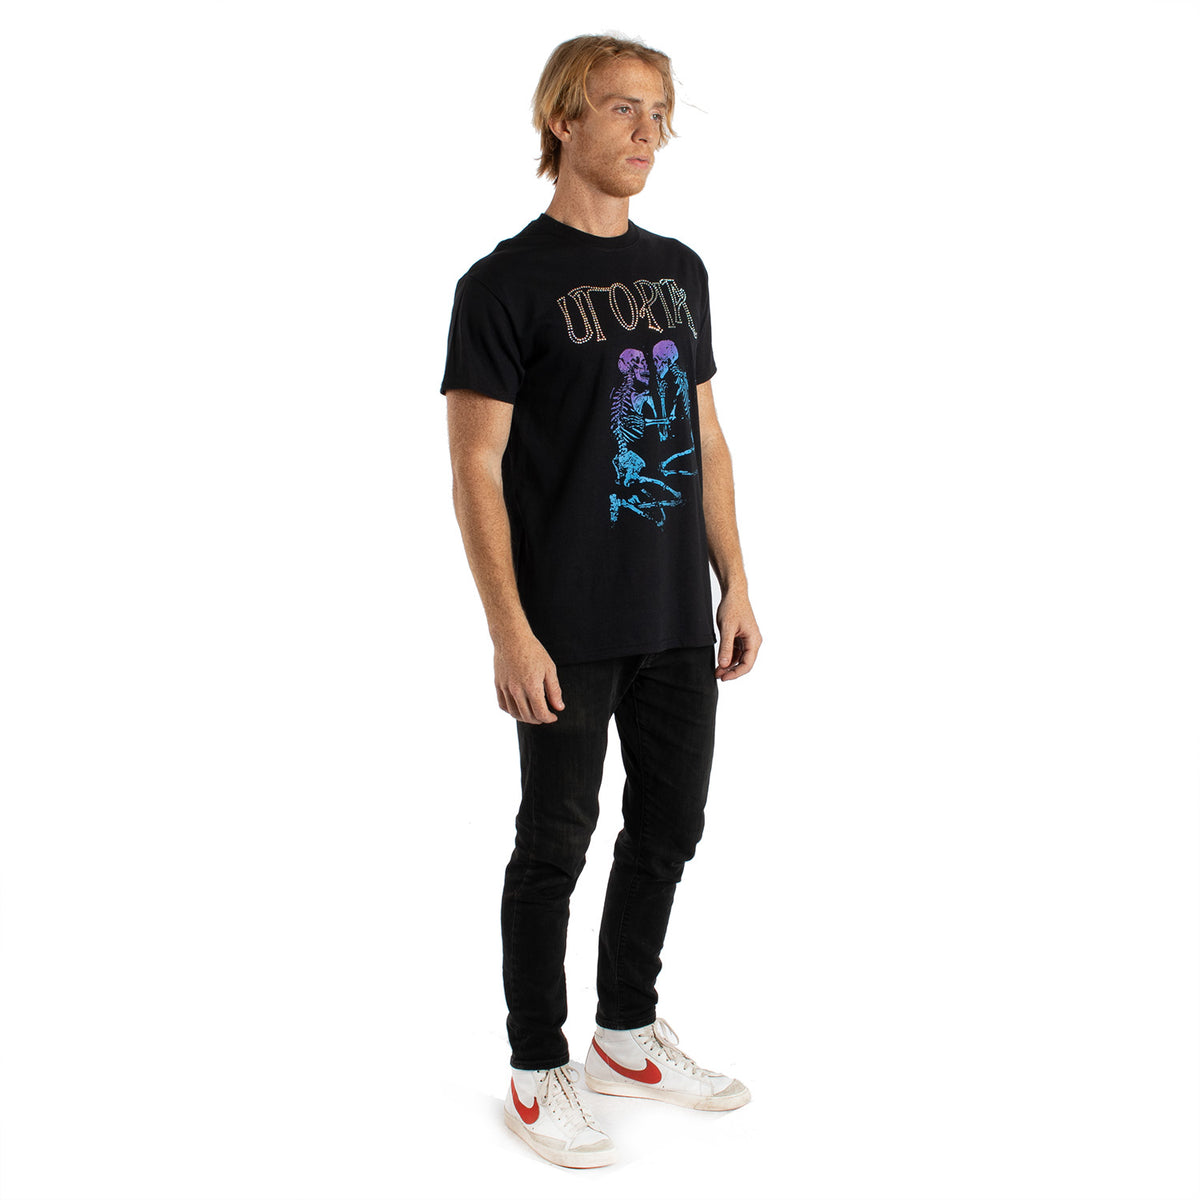 Altru Apparel Utopia lover skeletons rhinestone graphic tee